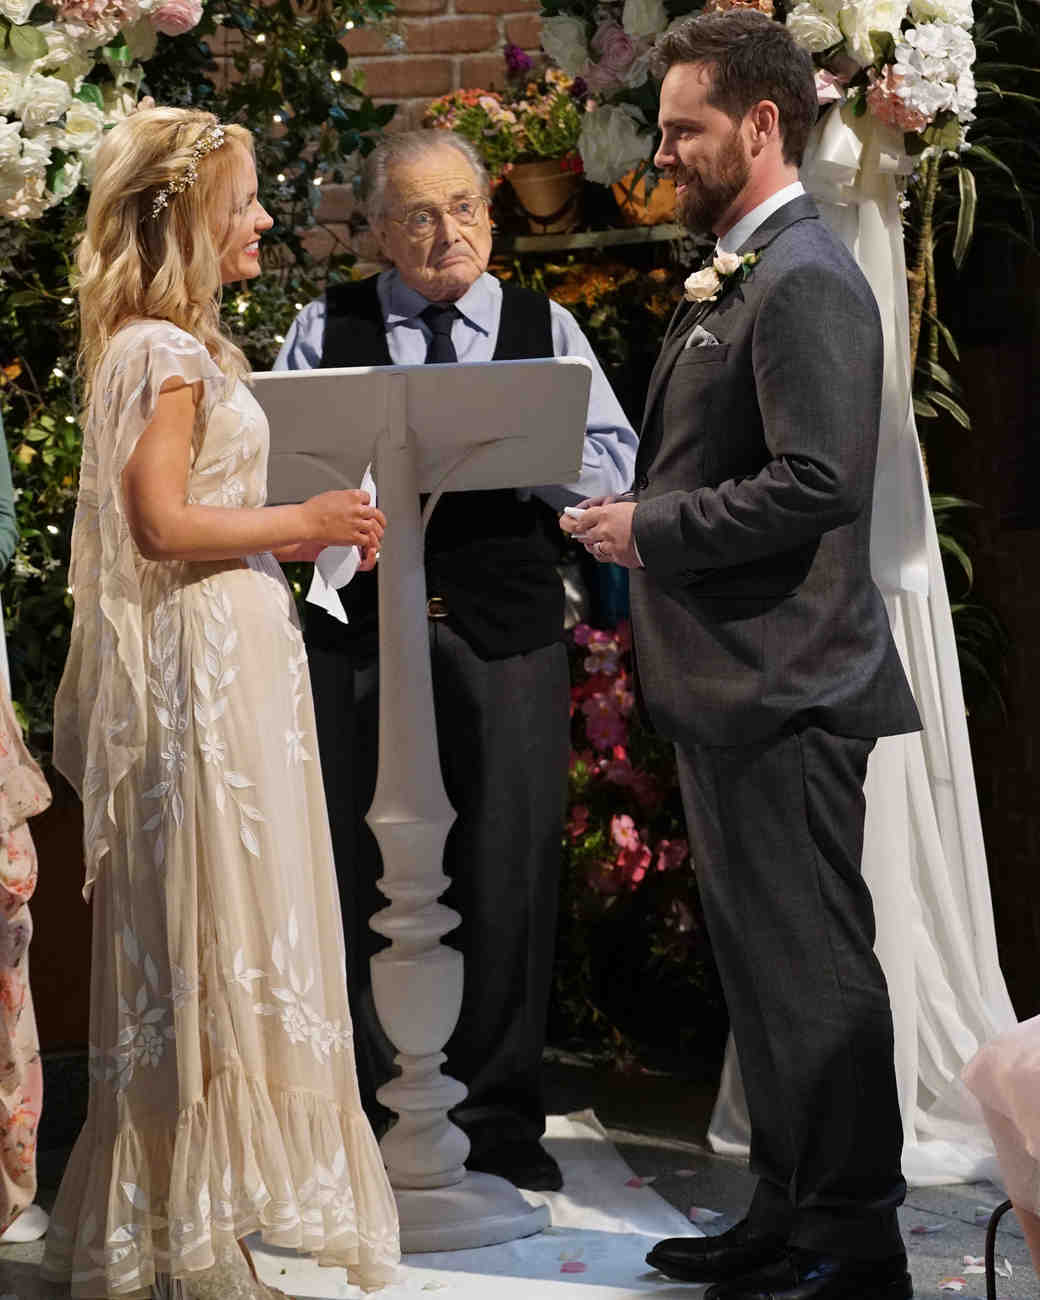 Shawn Hunter and Katy's wedding in Girl Meets World